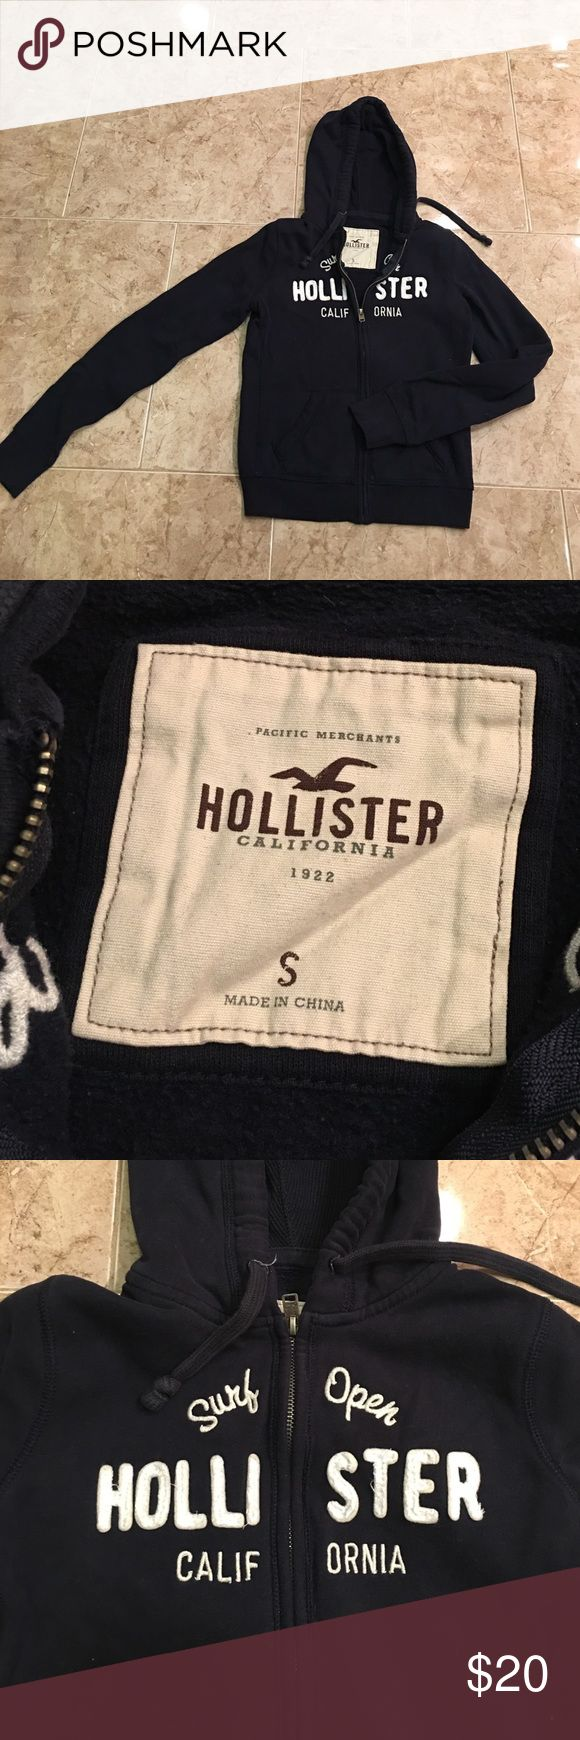 Hollister Zip up Sweatshirt This Hollister Zip up Sweatshirt is perfect for those breezy fall days. Good condition. Navy Blue and White. Very comfortable. Hollister Tops Sweatshirts & Hoodies